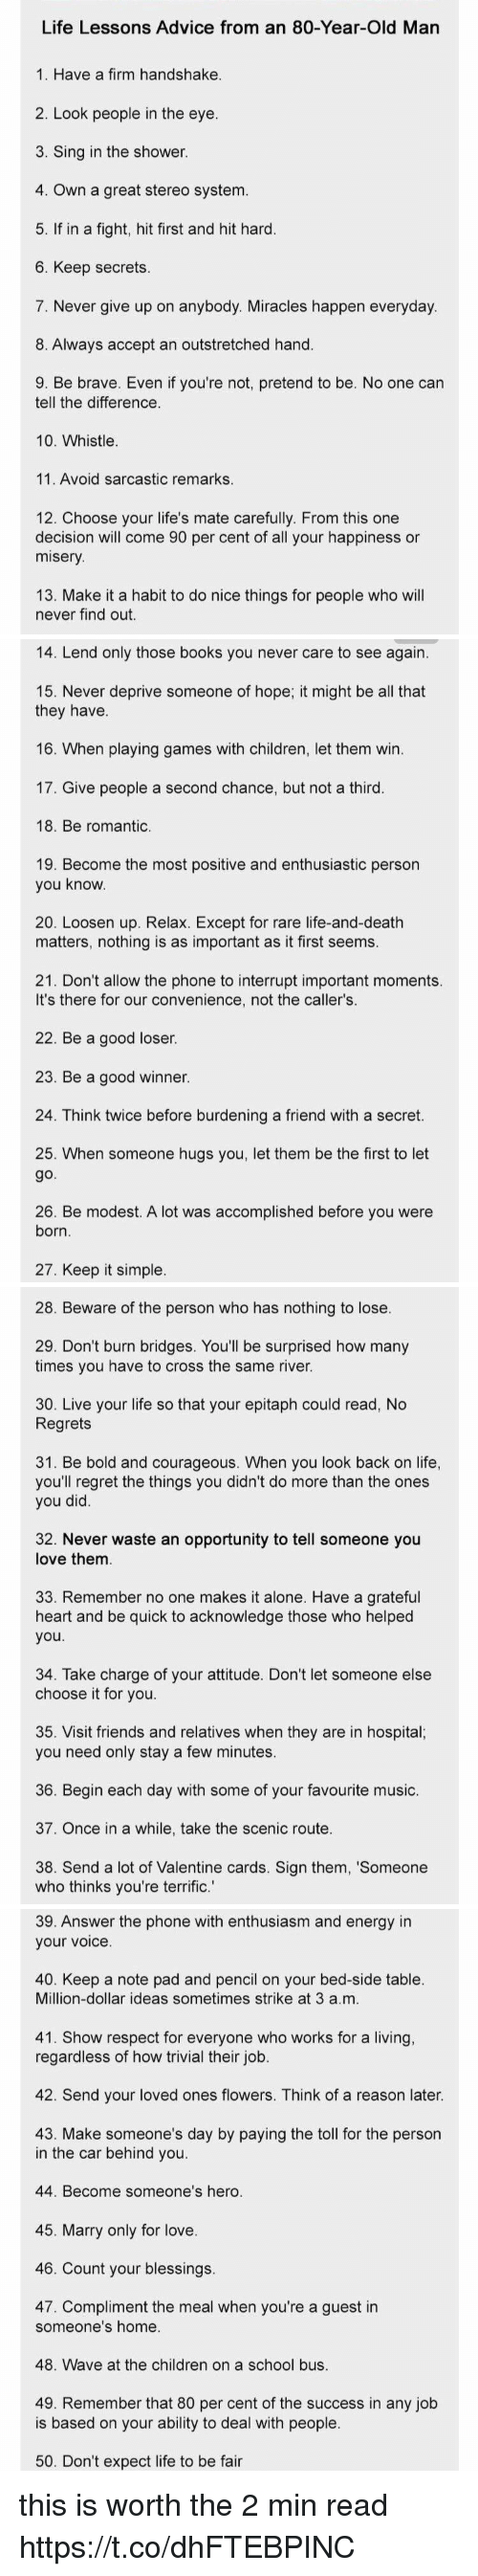 Life Lessons Advice From An 80